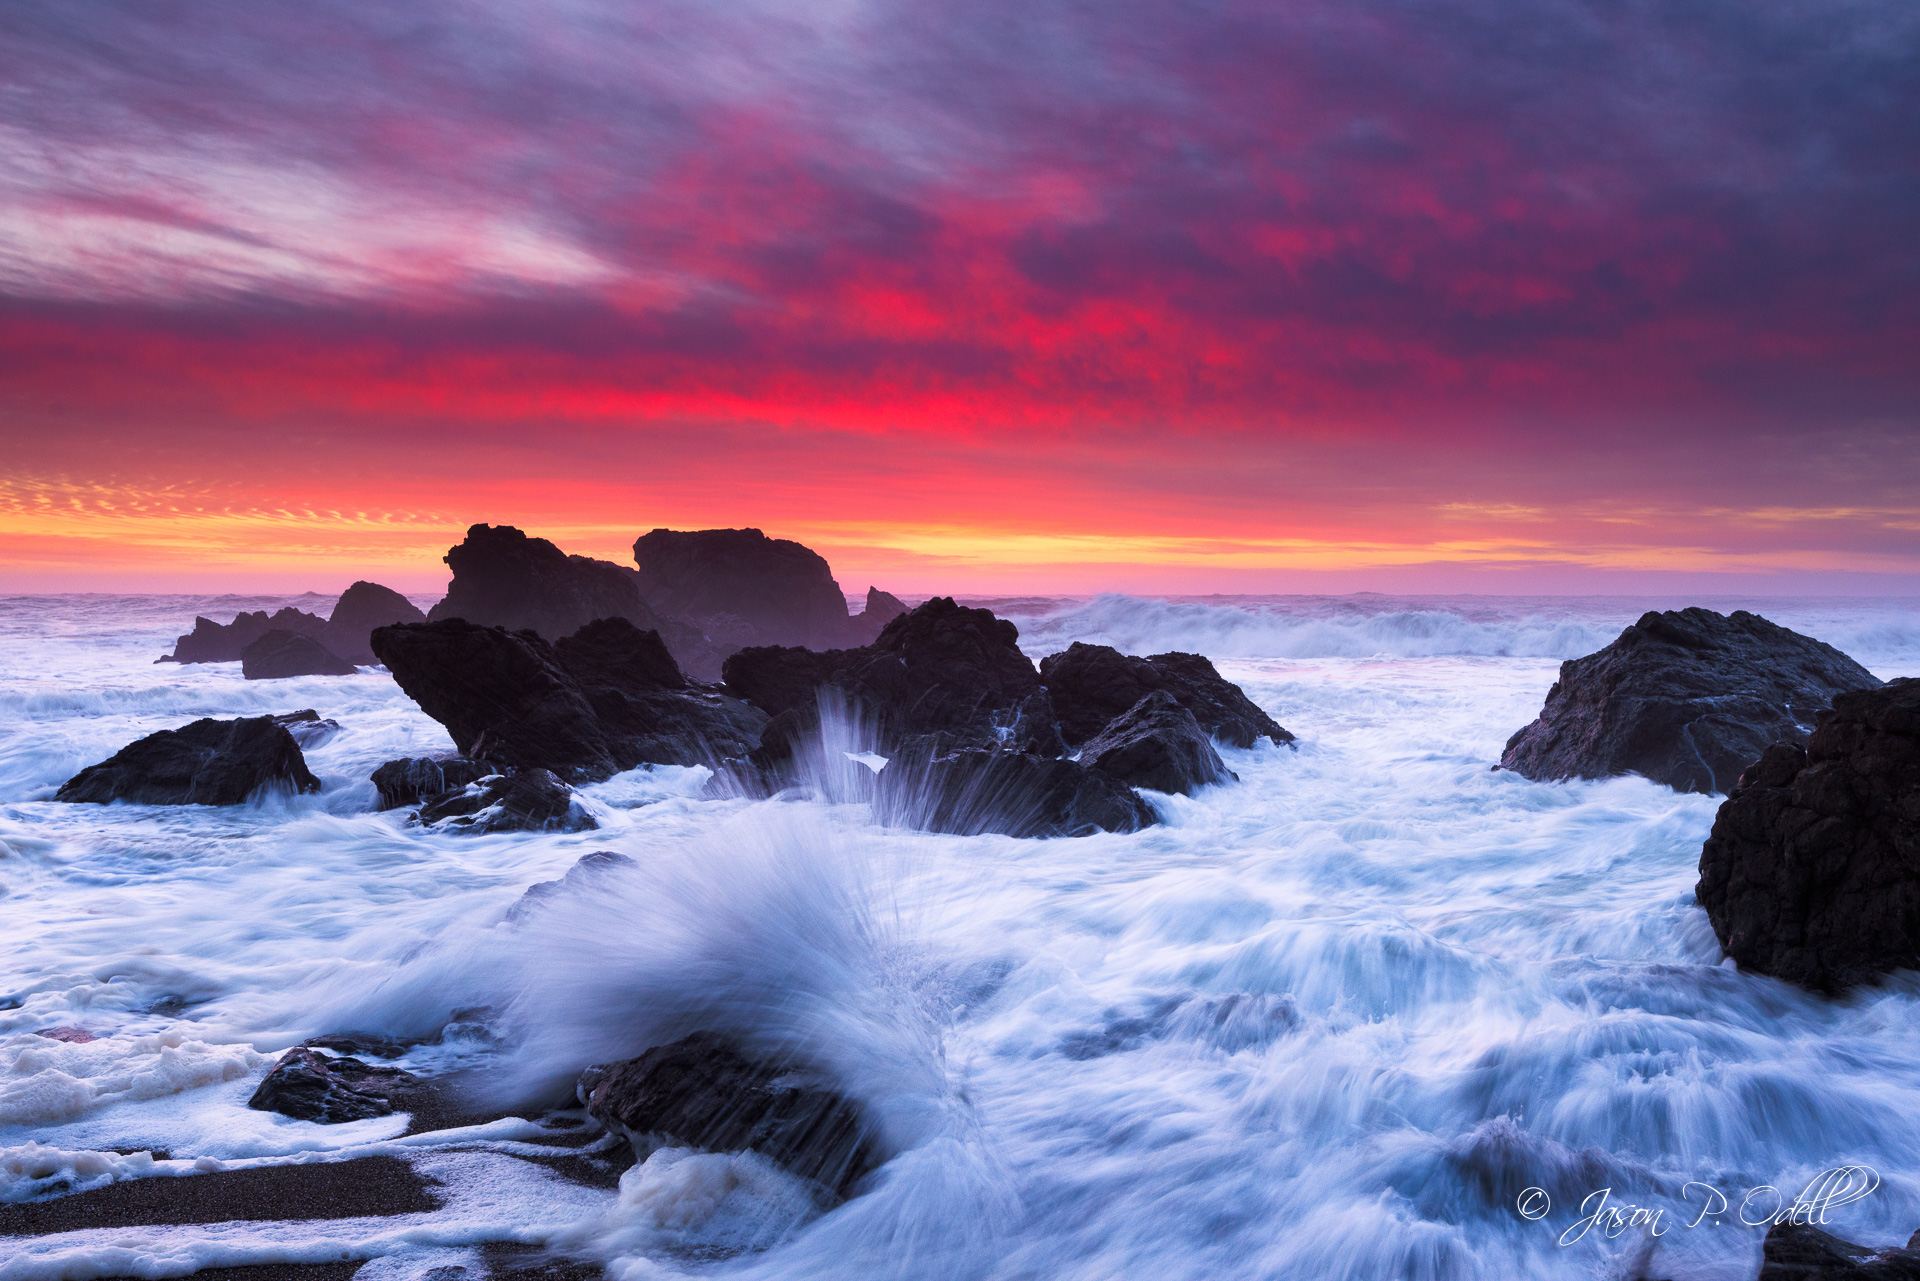 Capture stunning sunsets along California's rugged Sonoma Coast May 15-20, 2016